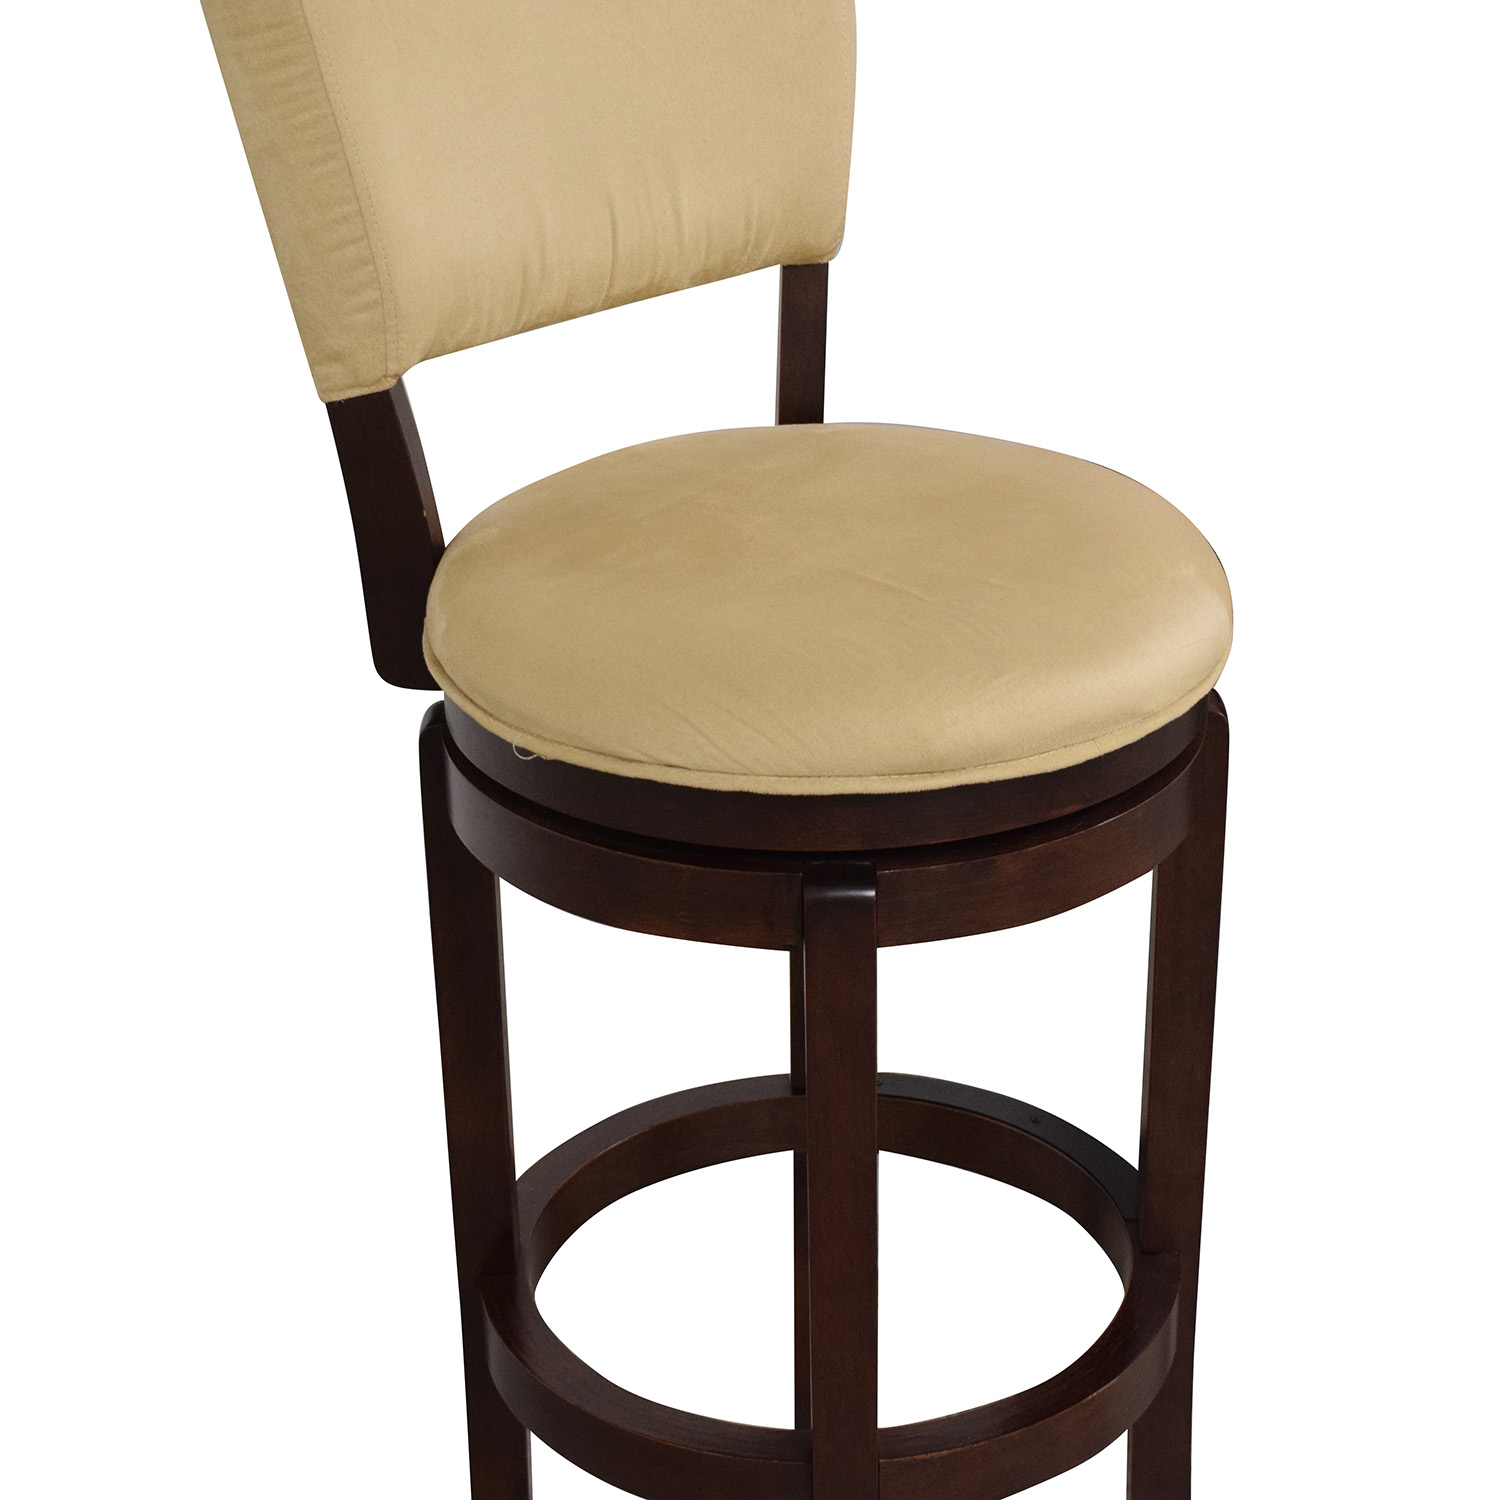 Rooms To Go Keefer Bar Stools / Chairs